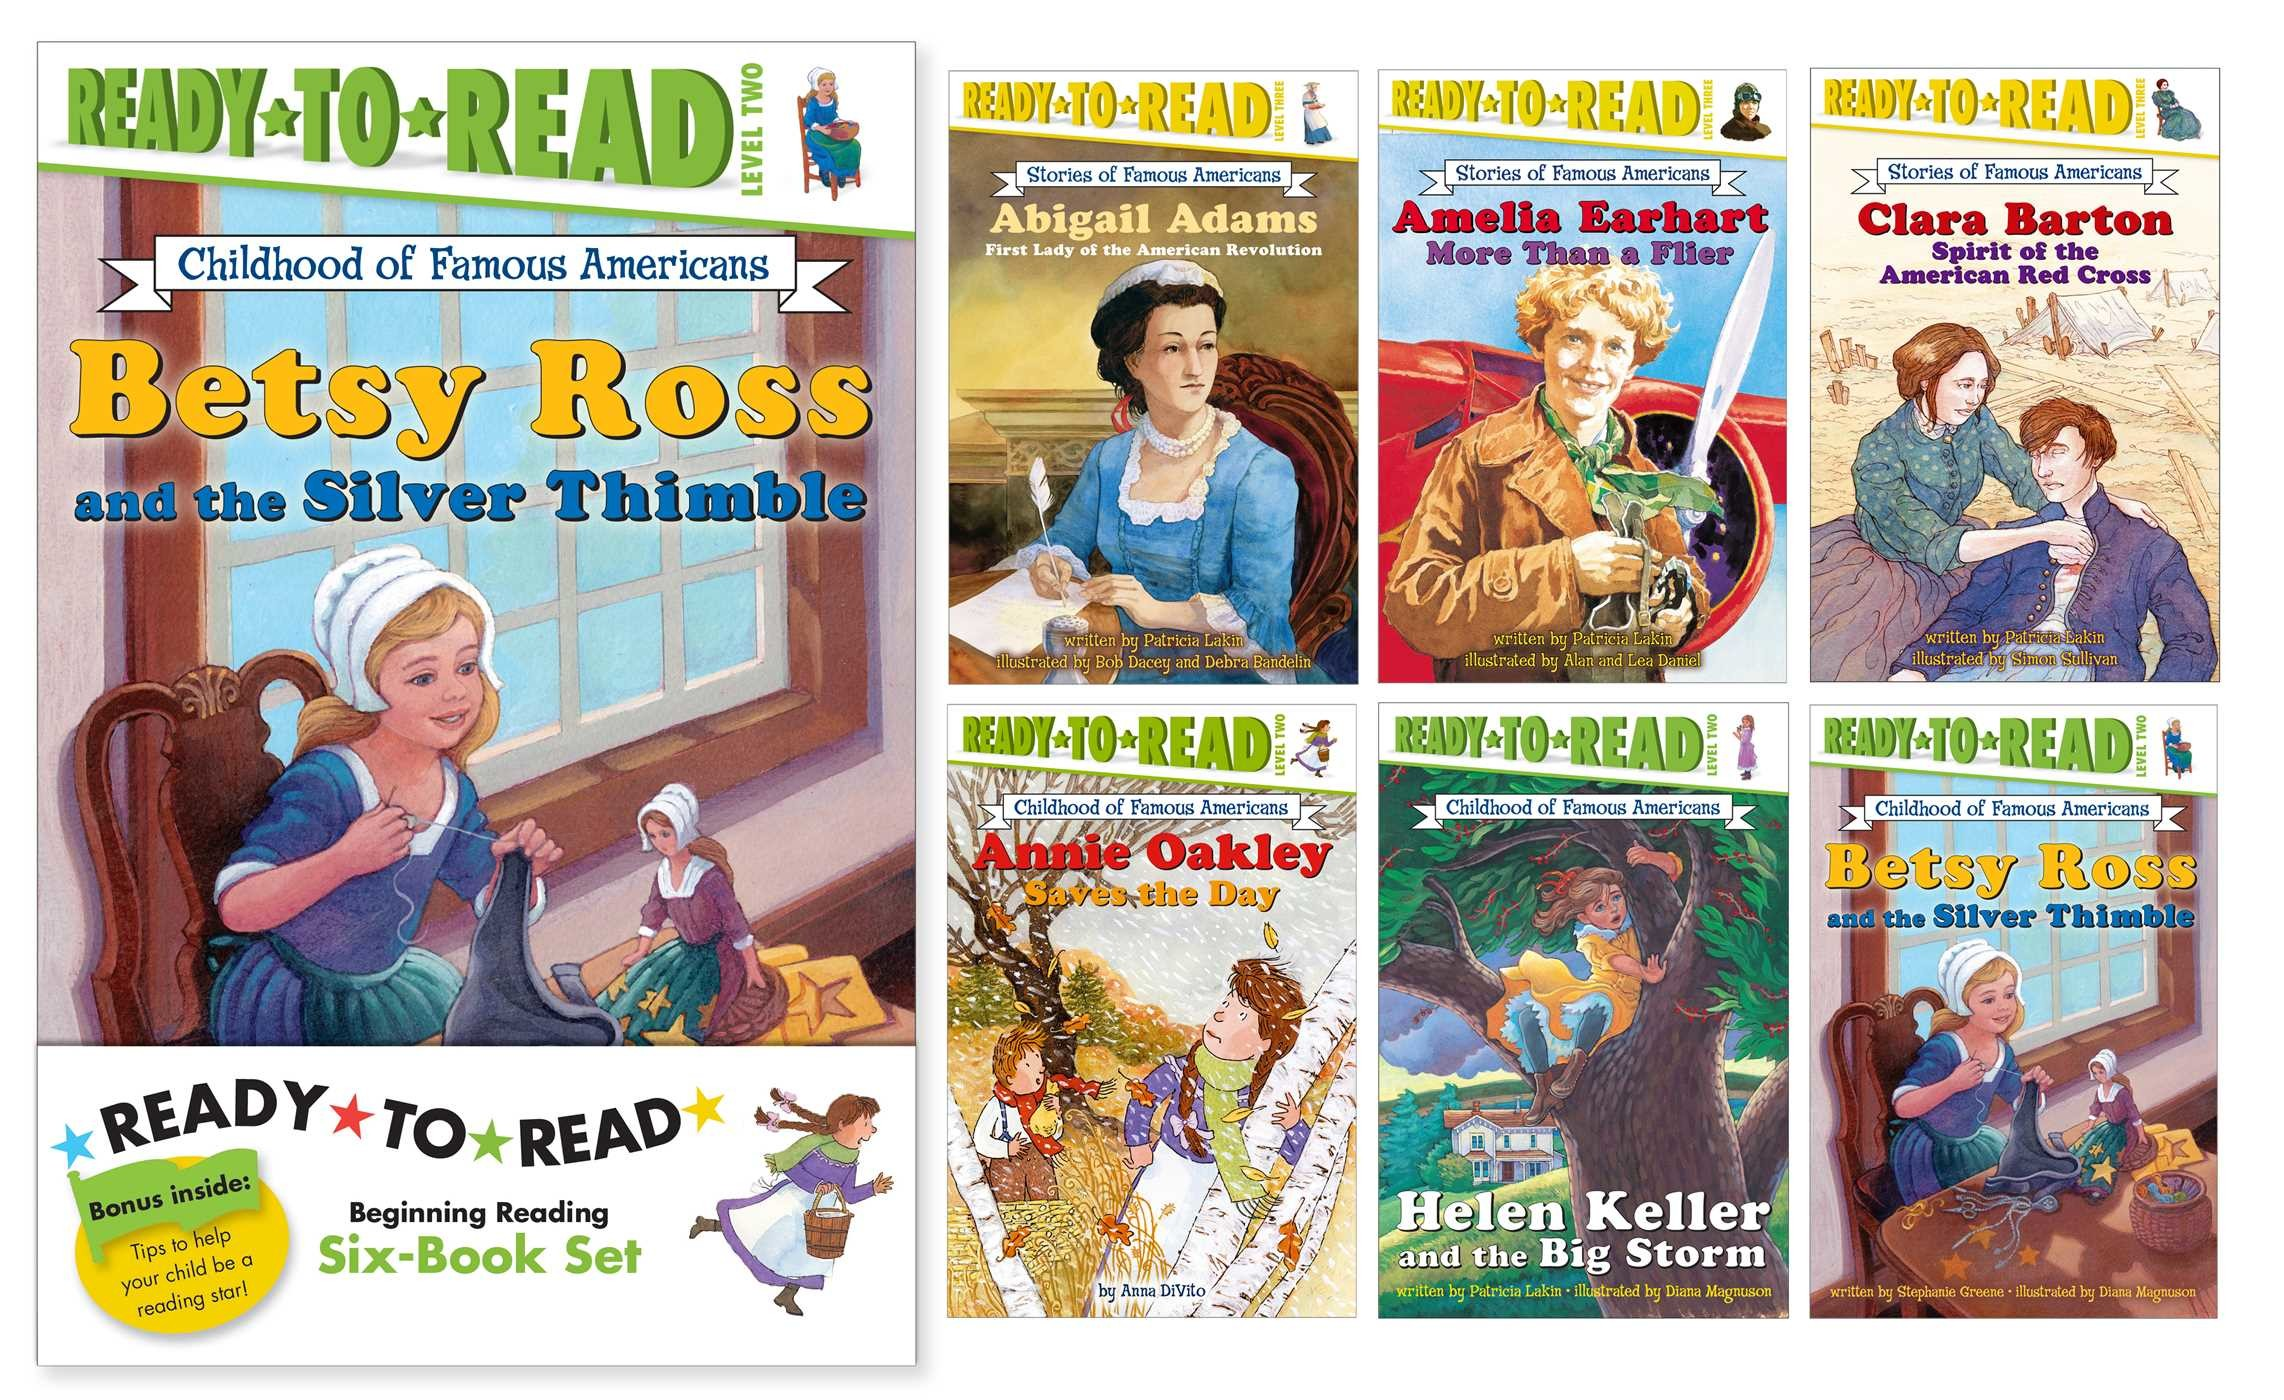 Childhood of famous americans ready to read value pack 2 9781481448284.in01